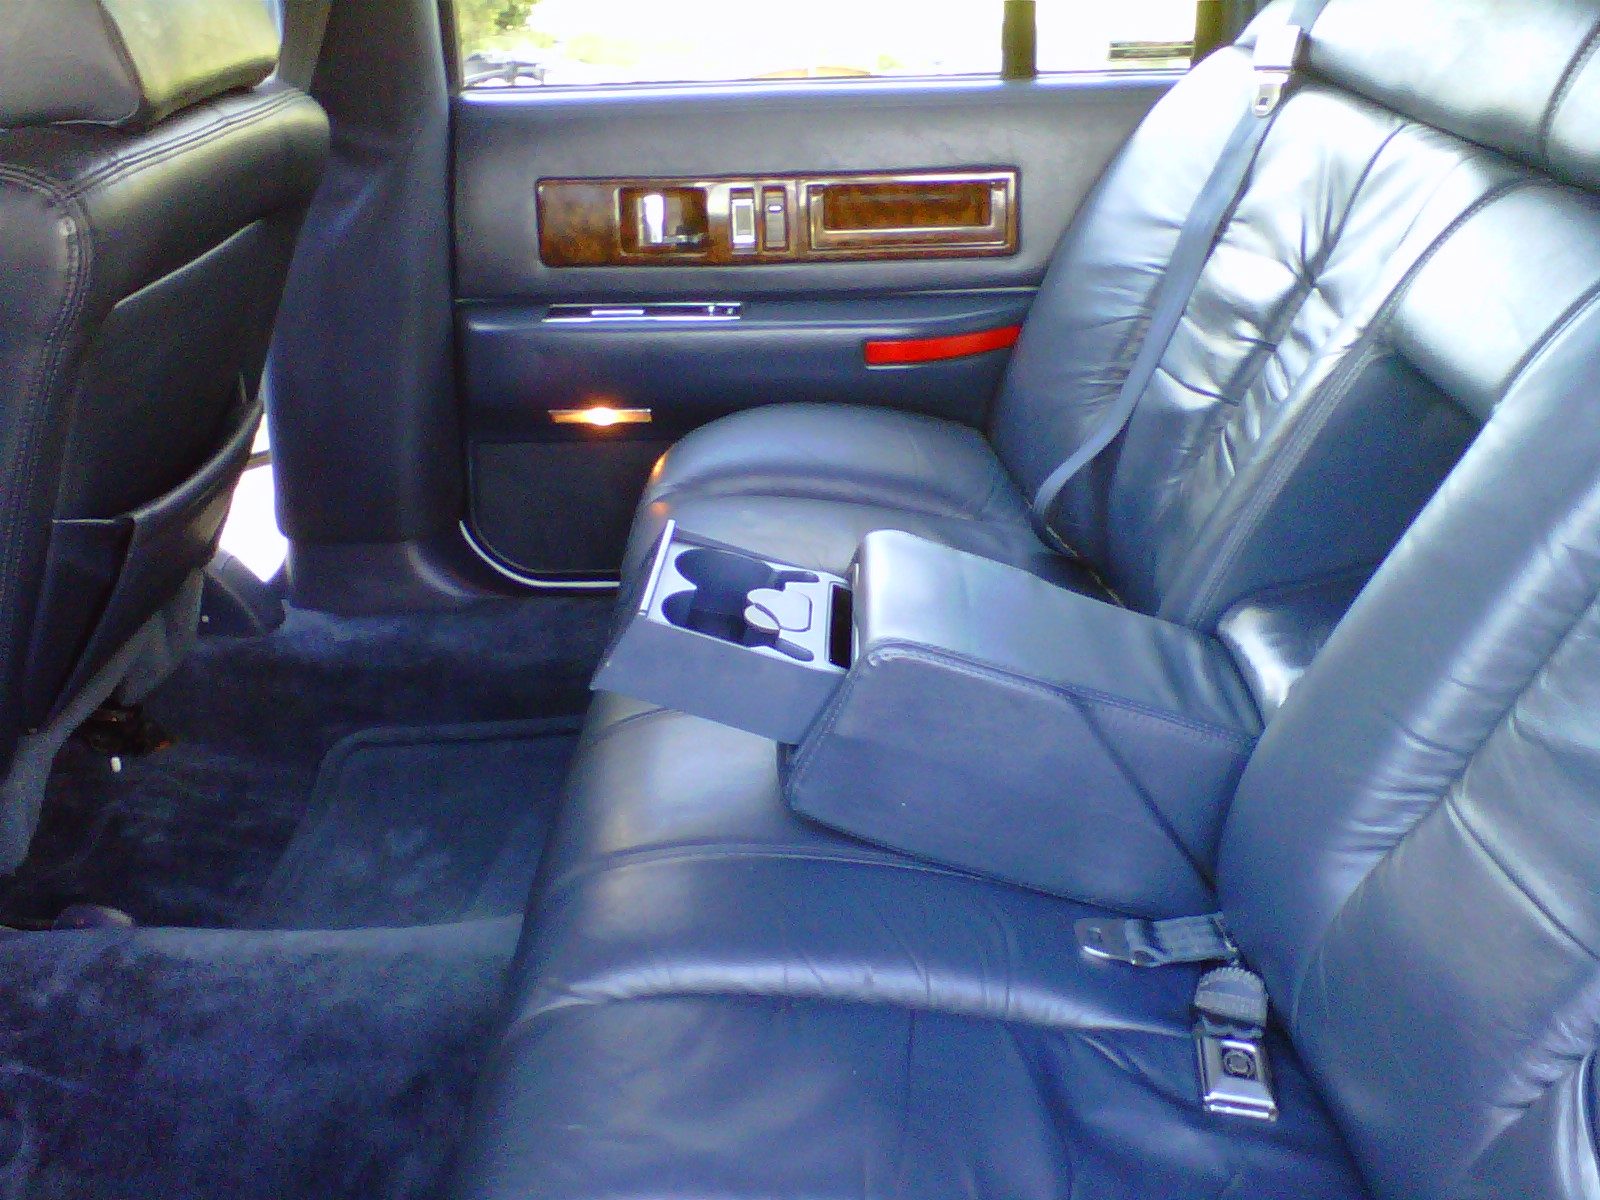 Cadillac Fleetwood interior #1